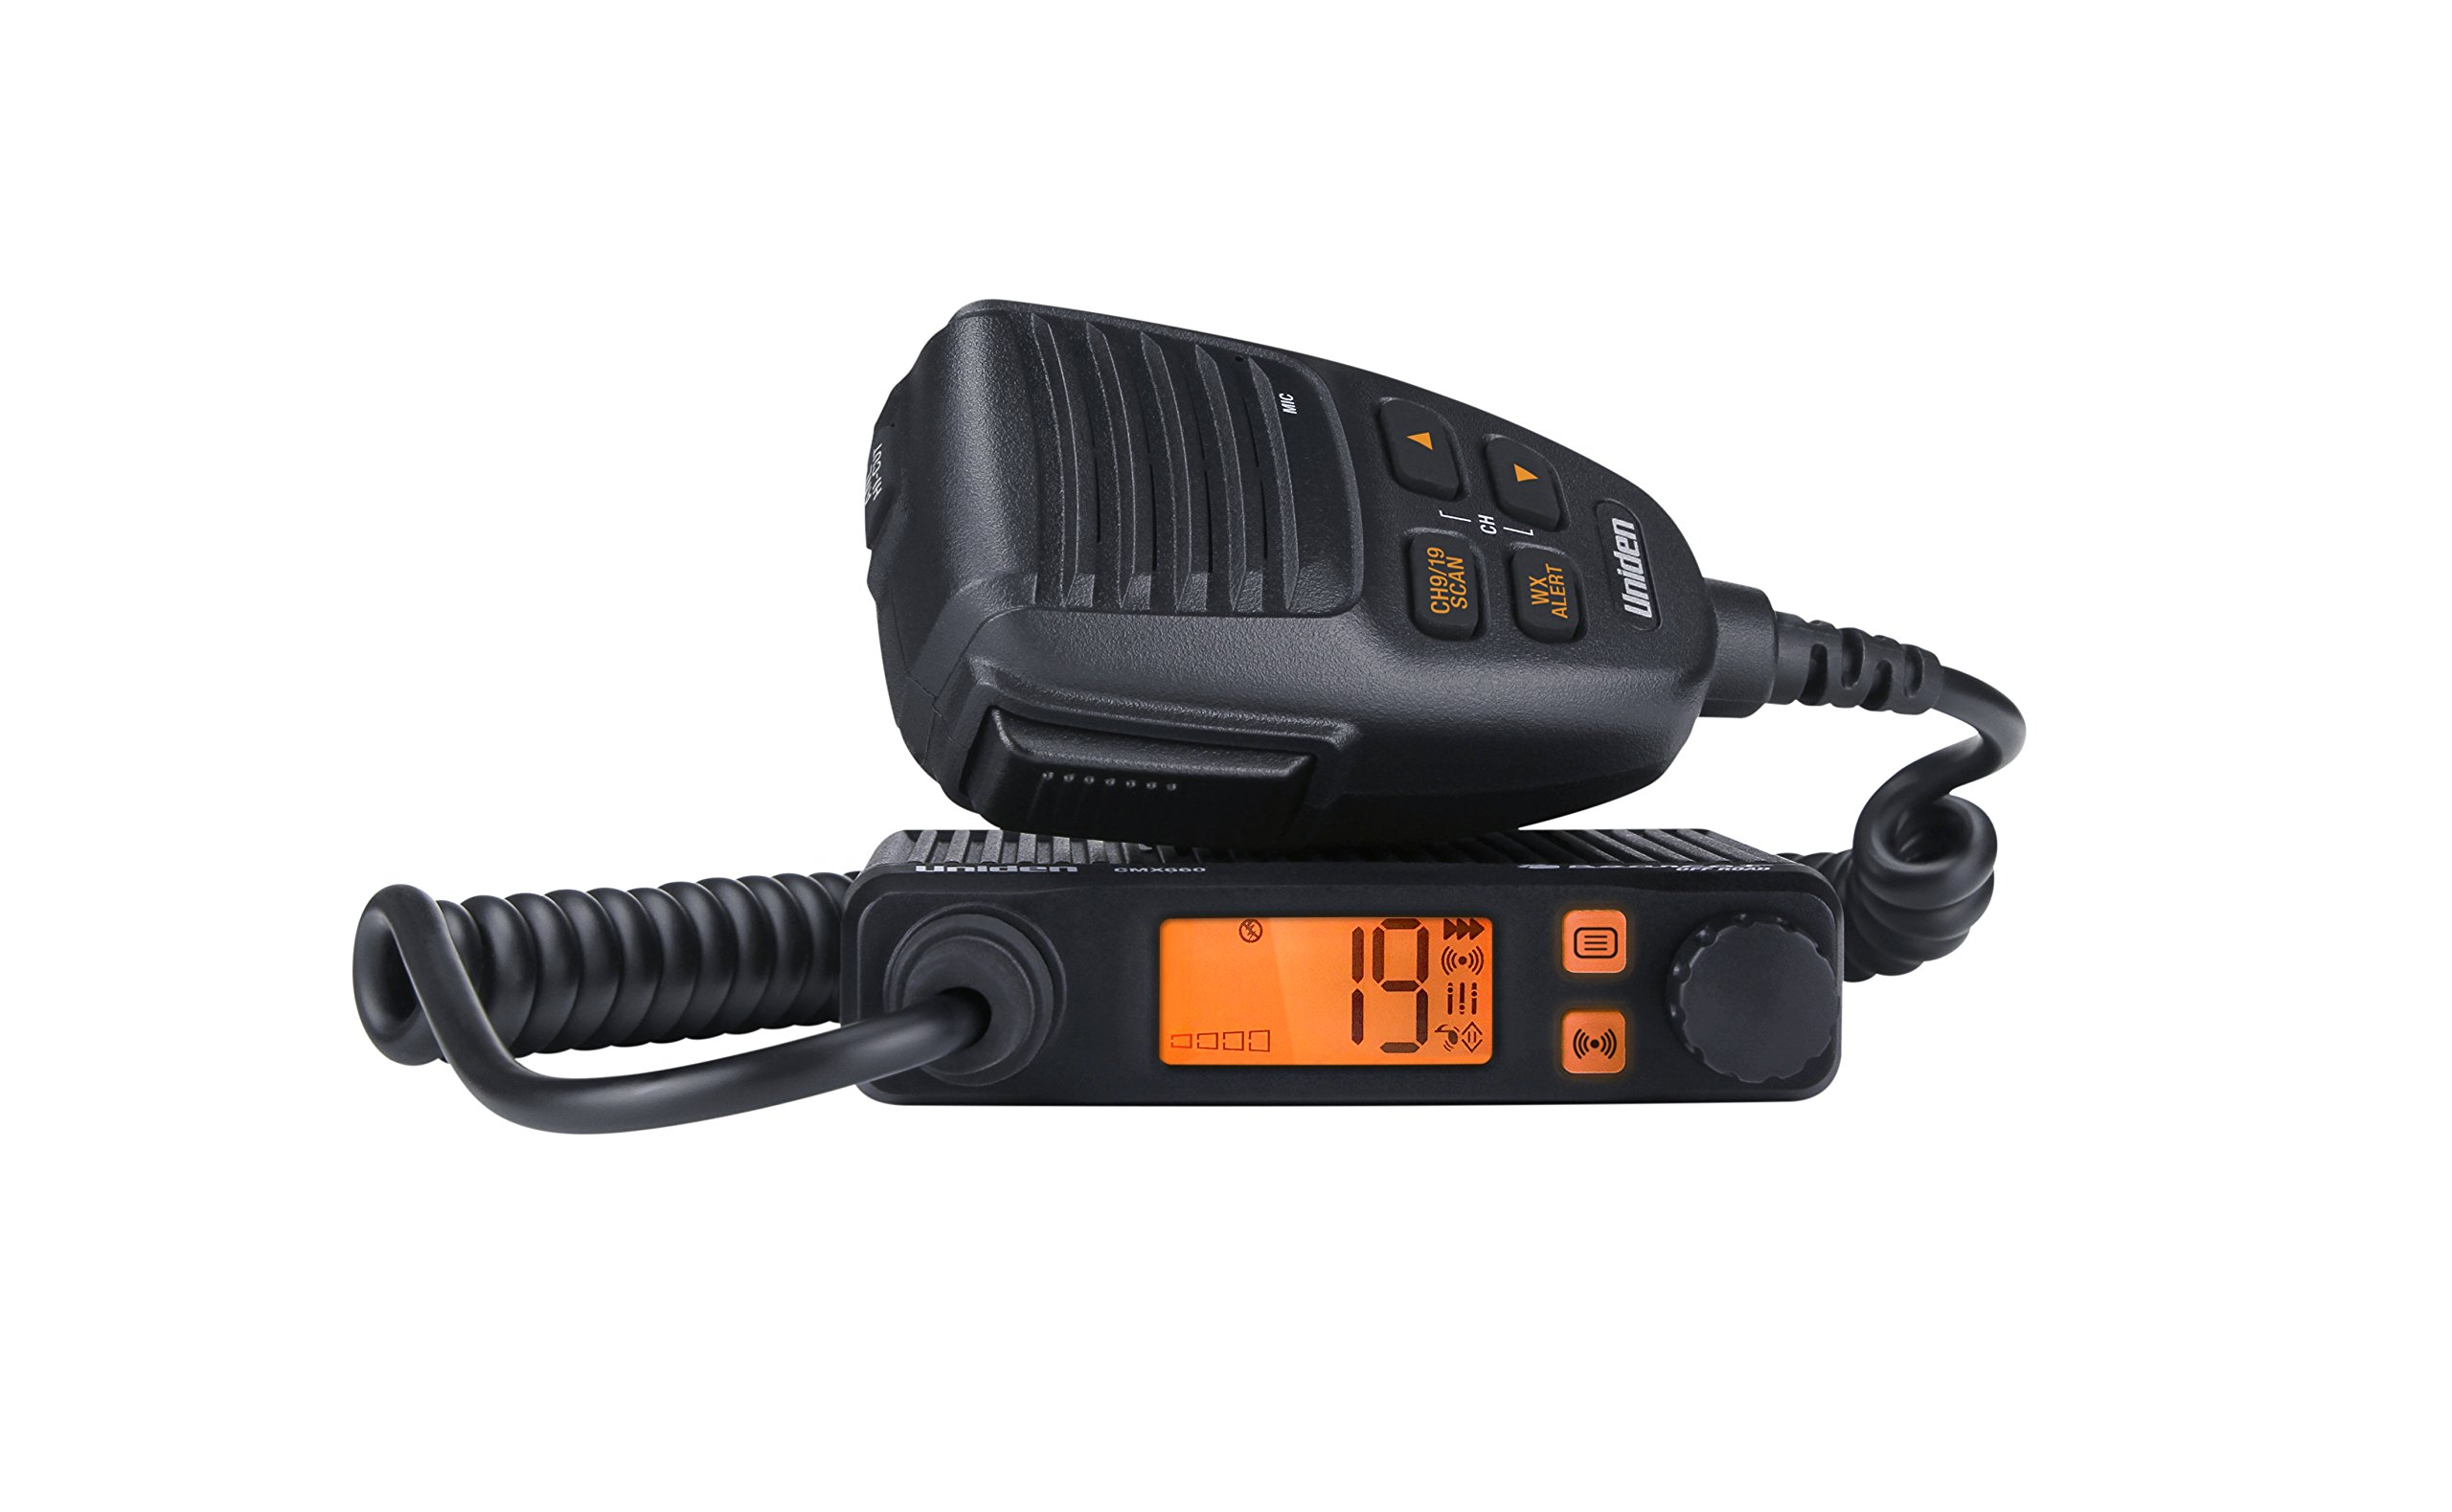 Uniden CMX660 Bearcat Off Road Series Compact Mobile CB Radio, 40-Channel Operation, Ultra-Compact for Easy Mounting, NOAA Weather with Alert, Easy-access Mic controls - Black Color